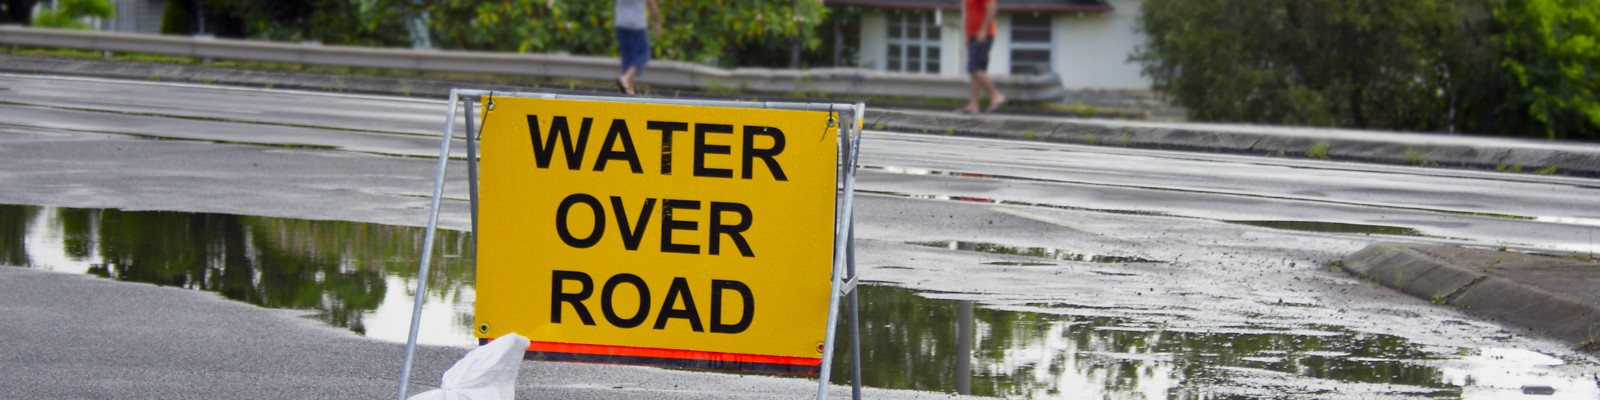 Water over road sign